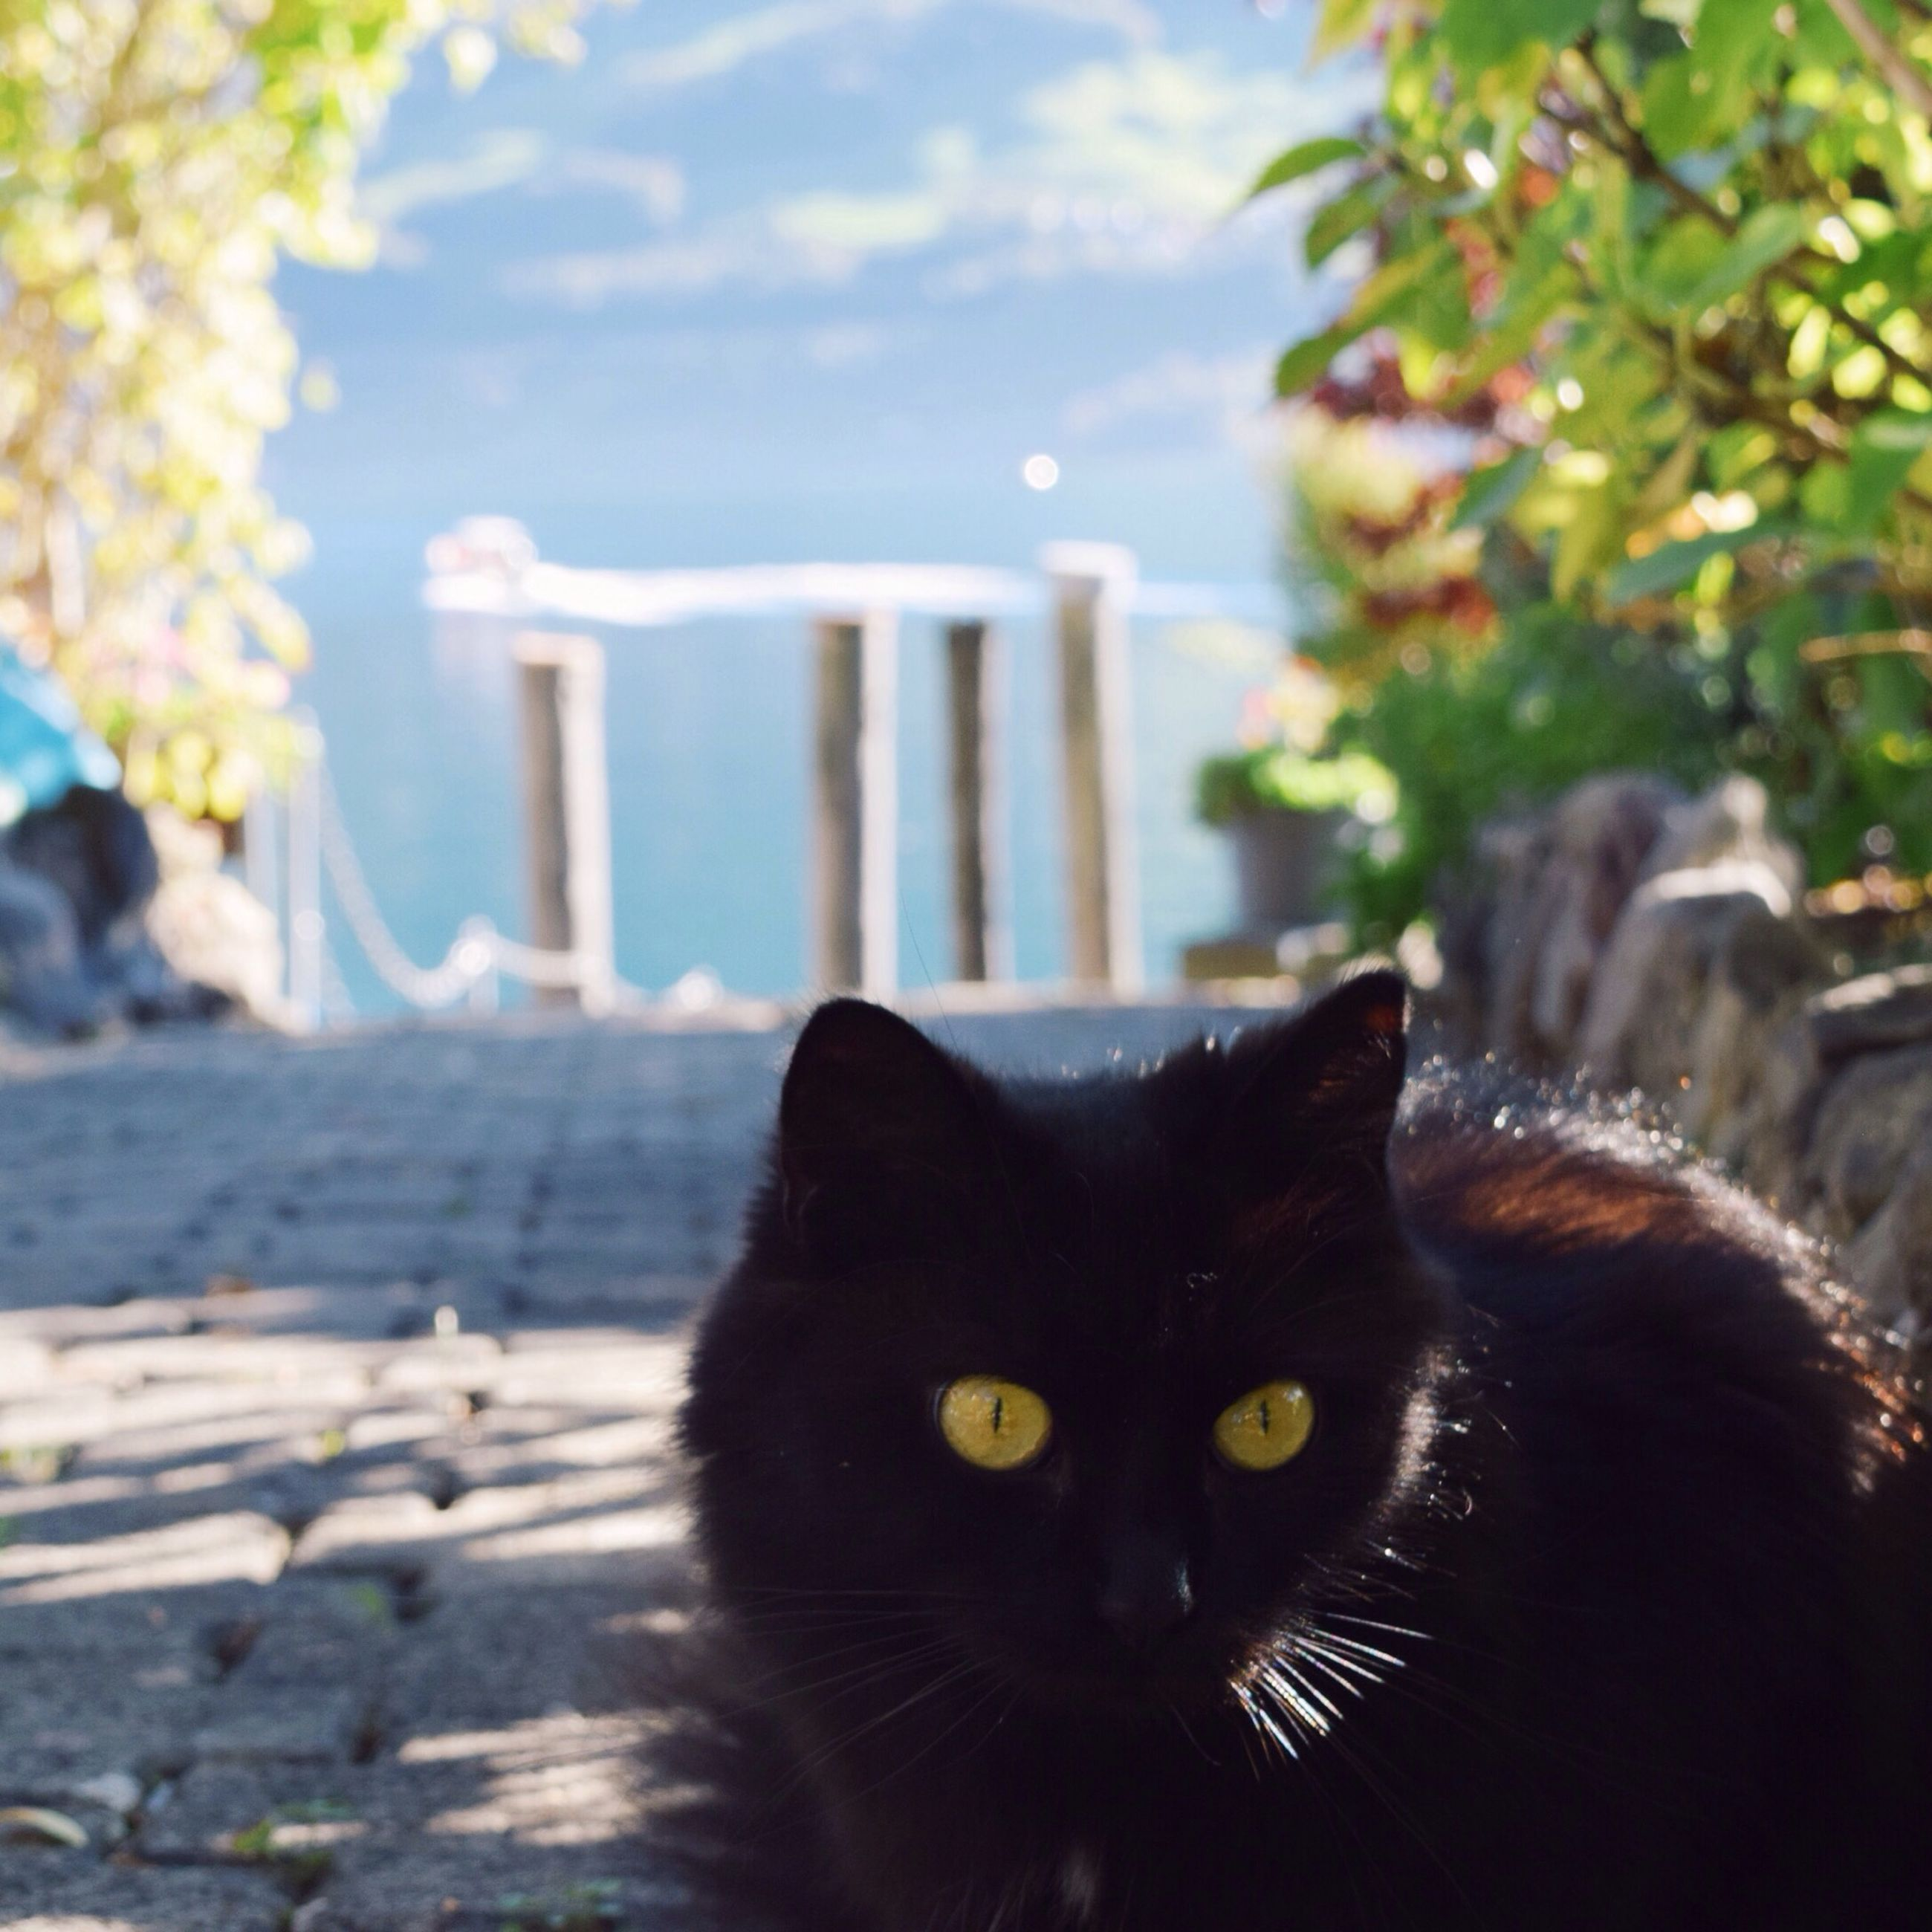 domestic cat, pets, animal themes, one animal, cat, mammal, domestic animals, feline, focus on foreground, whisker, portrait, looking at camera, close-up, black color, sitting, relaxation, day, no people, outdoors